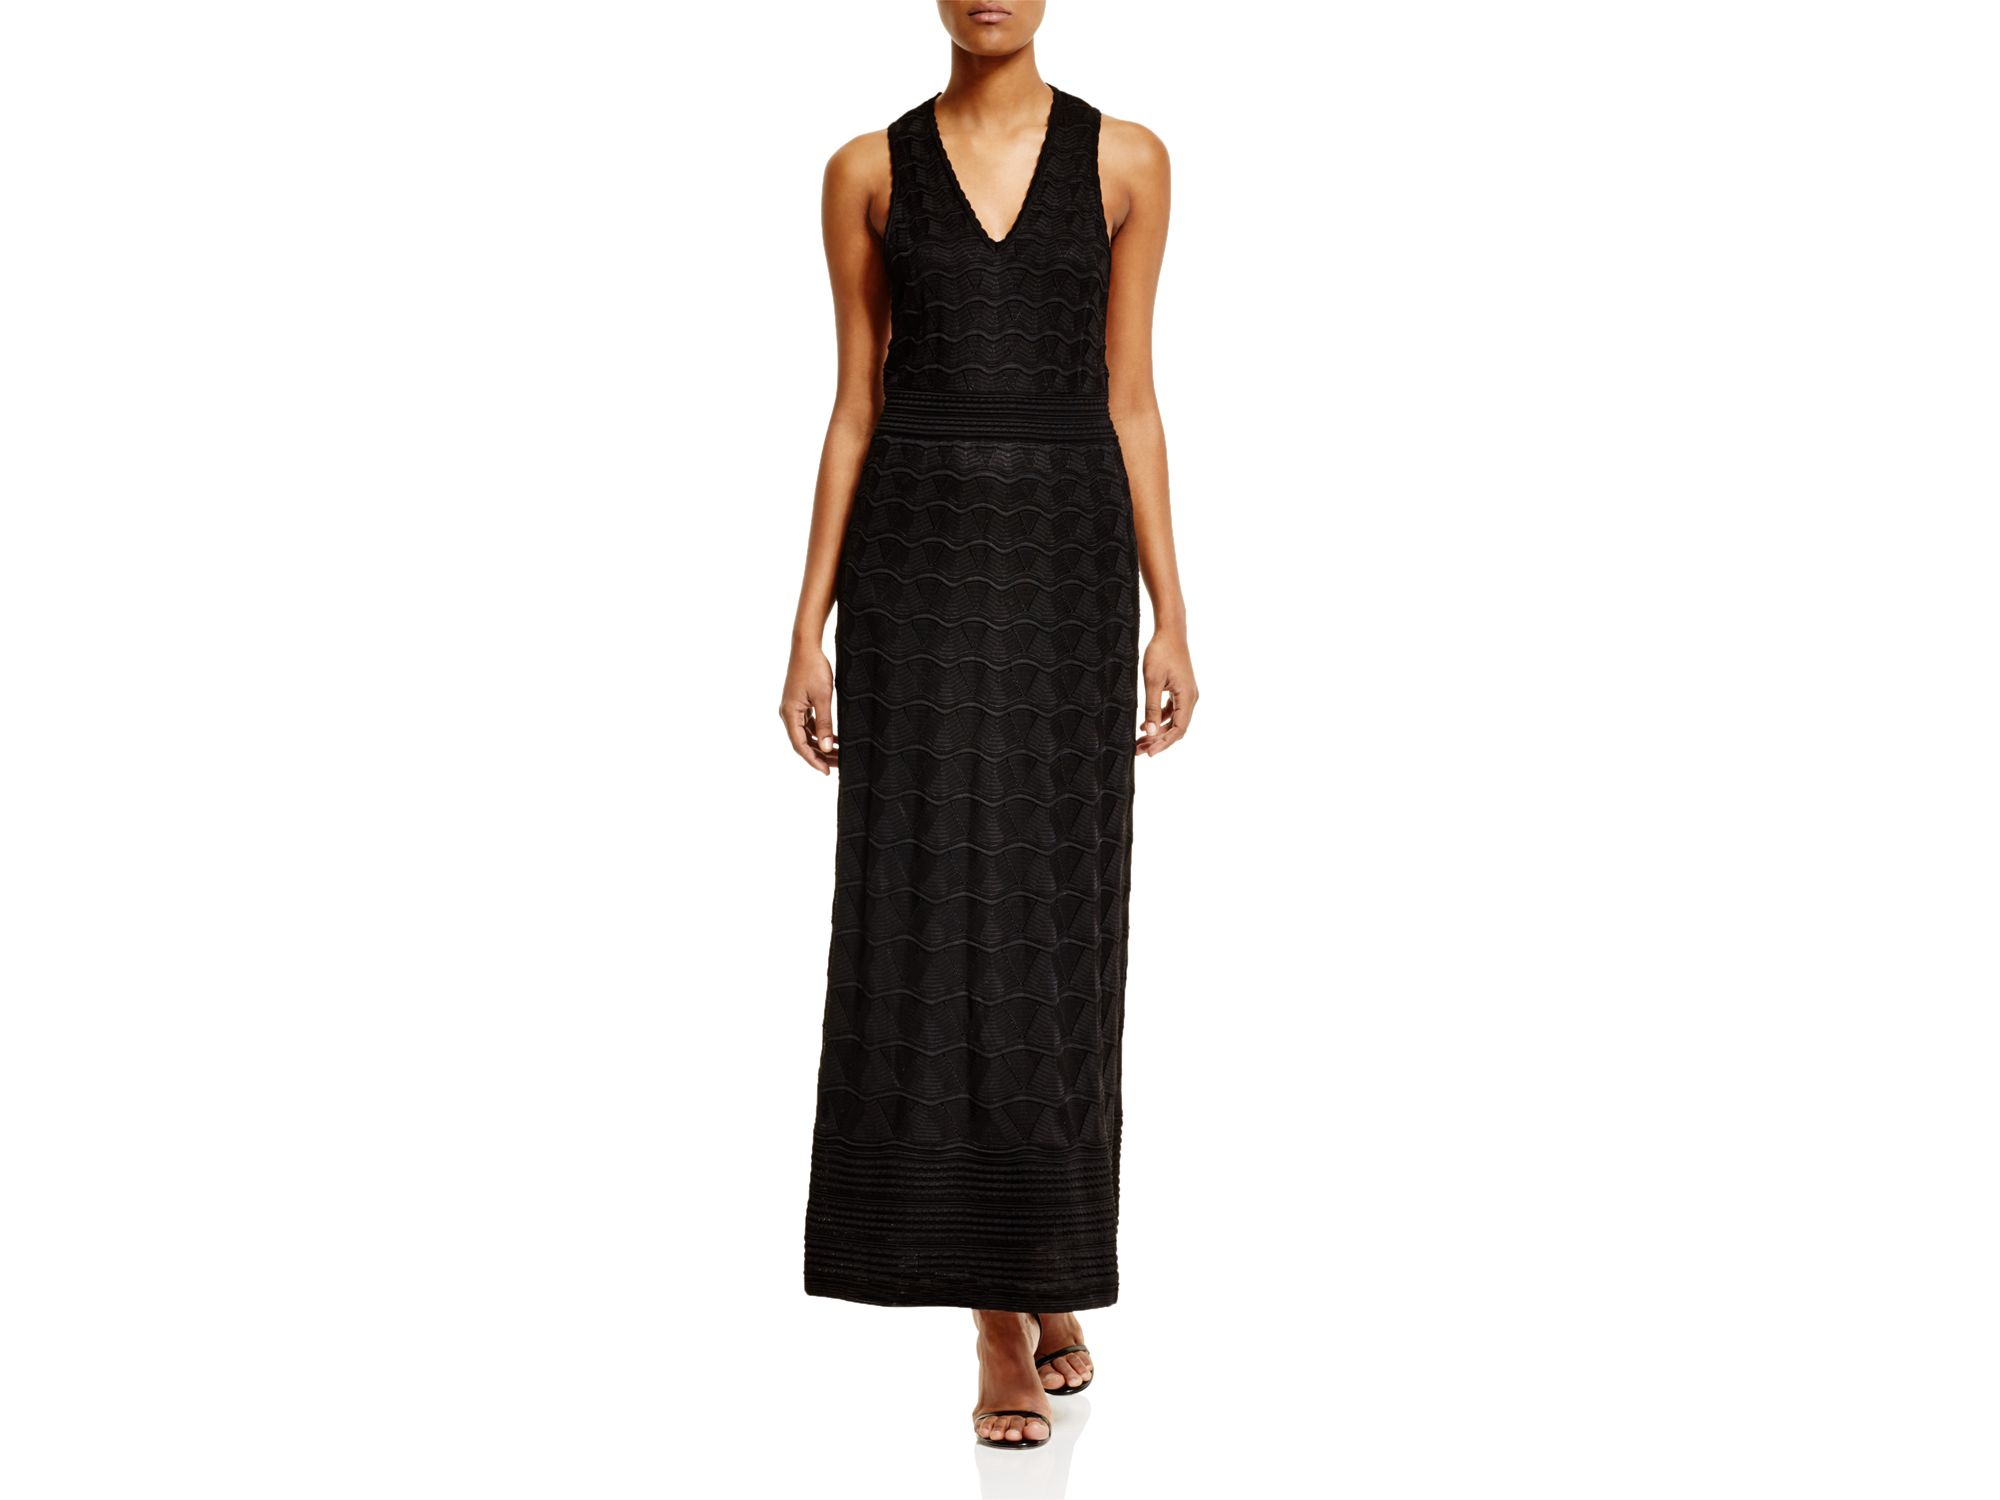 M missoni Knit Racerback Maxi Dress in Black  Lyst